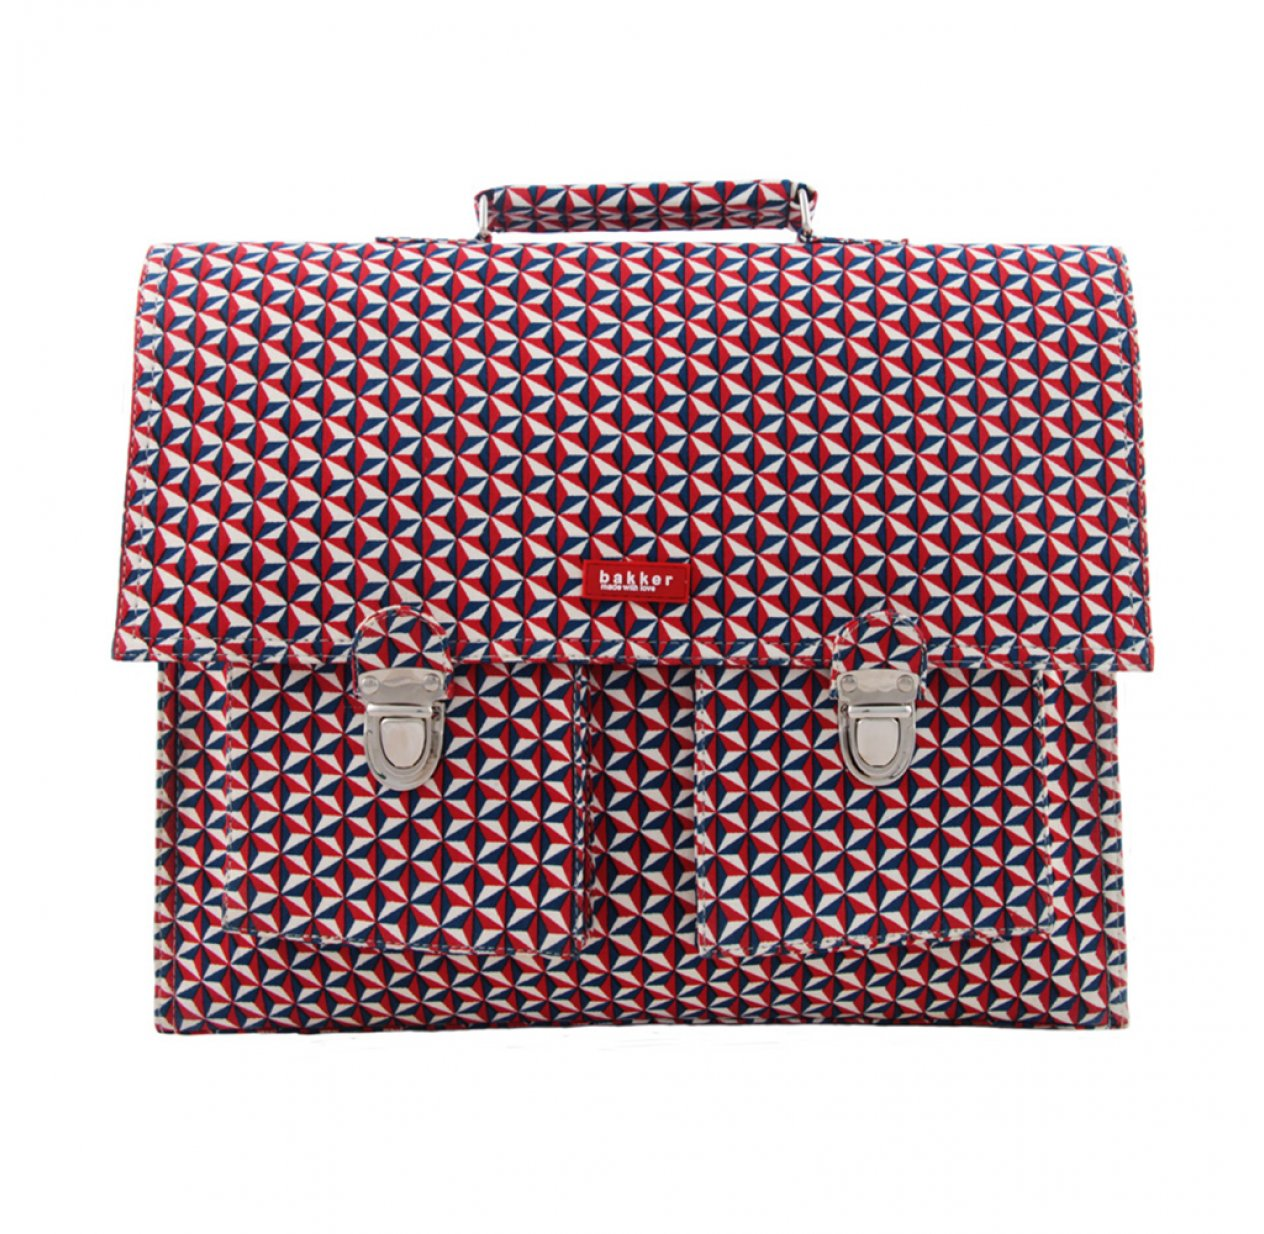 Cartable Bintang - Rouge